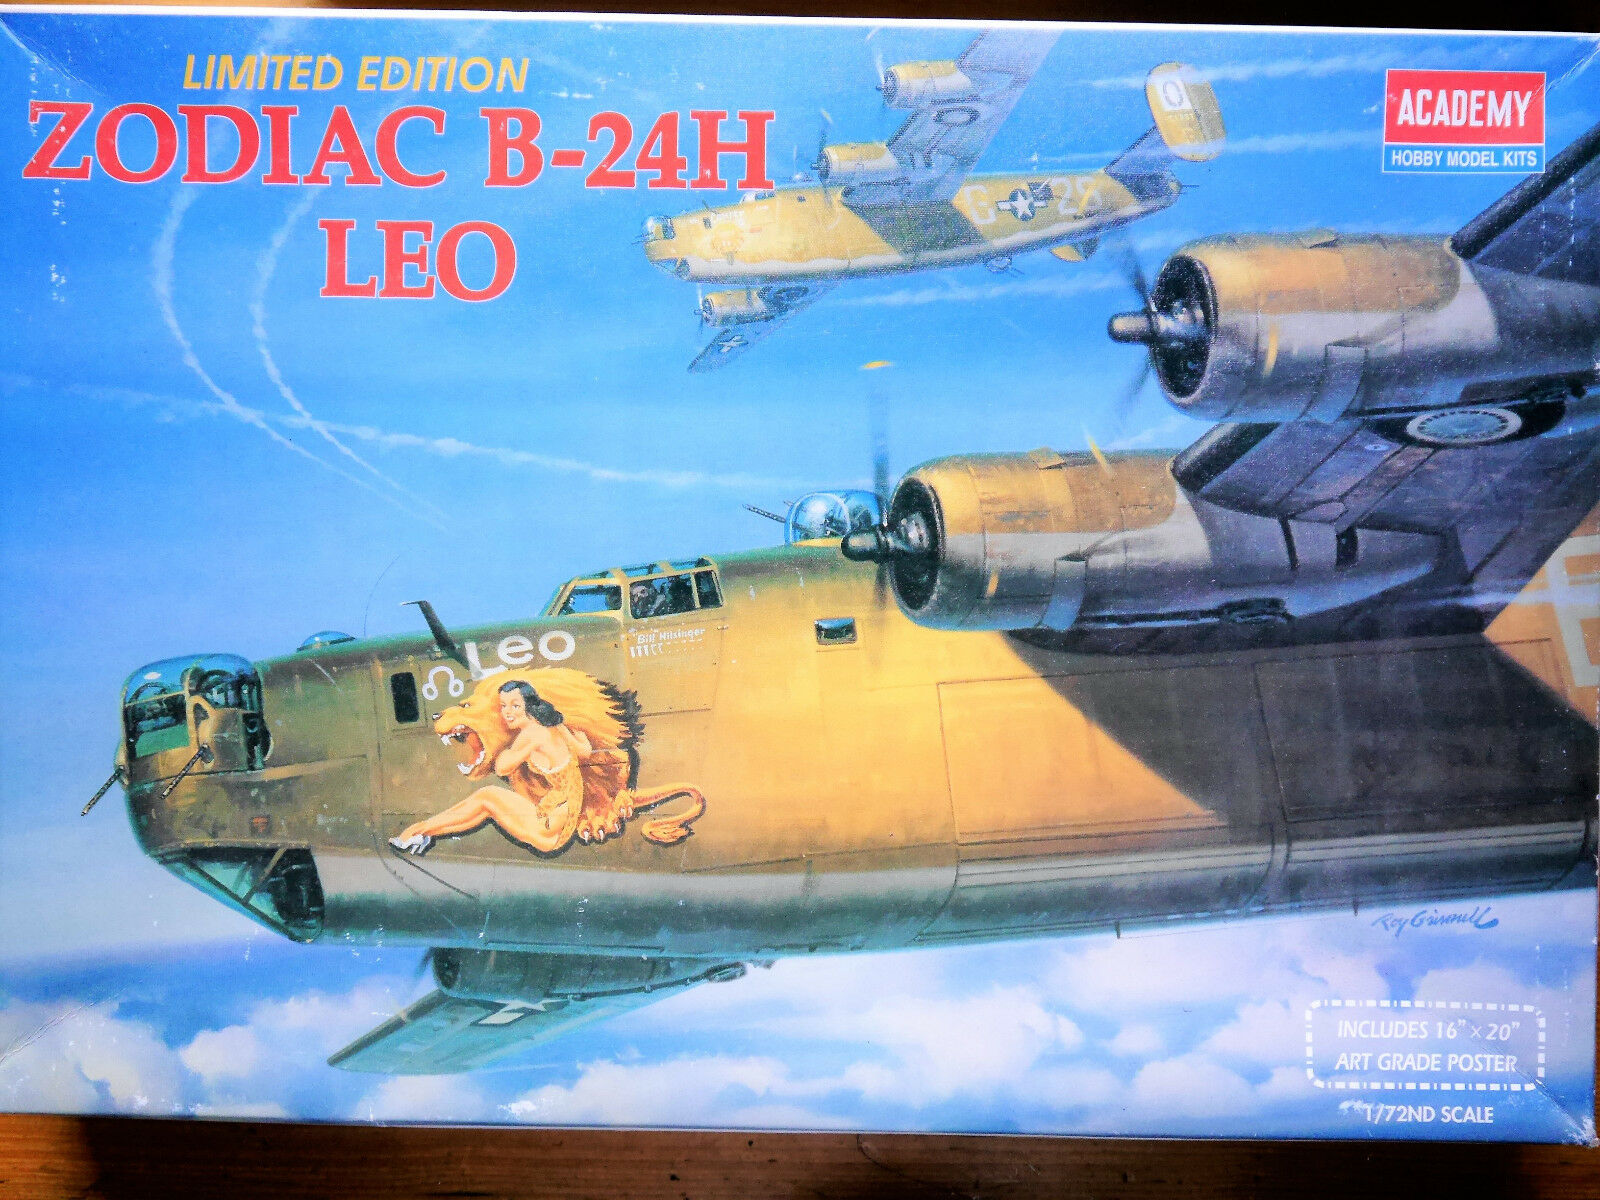 US Air Force ZODIAC B-24H B-24H B-24H  LEO , Academy Hobby Kits  2172 LIMITED 1 72 boxed  | Exquisite Handwerkskunst